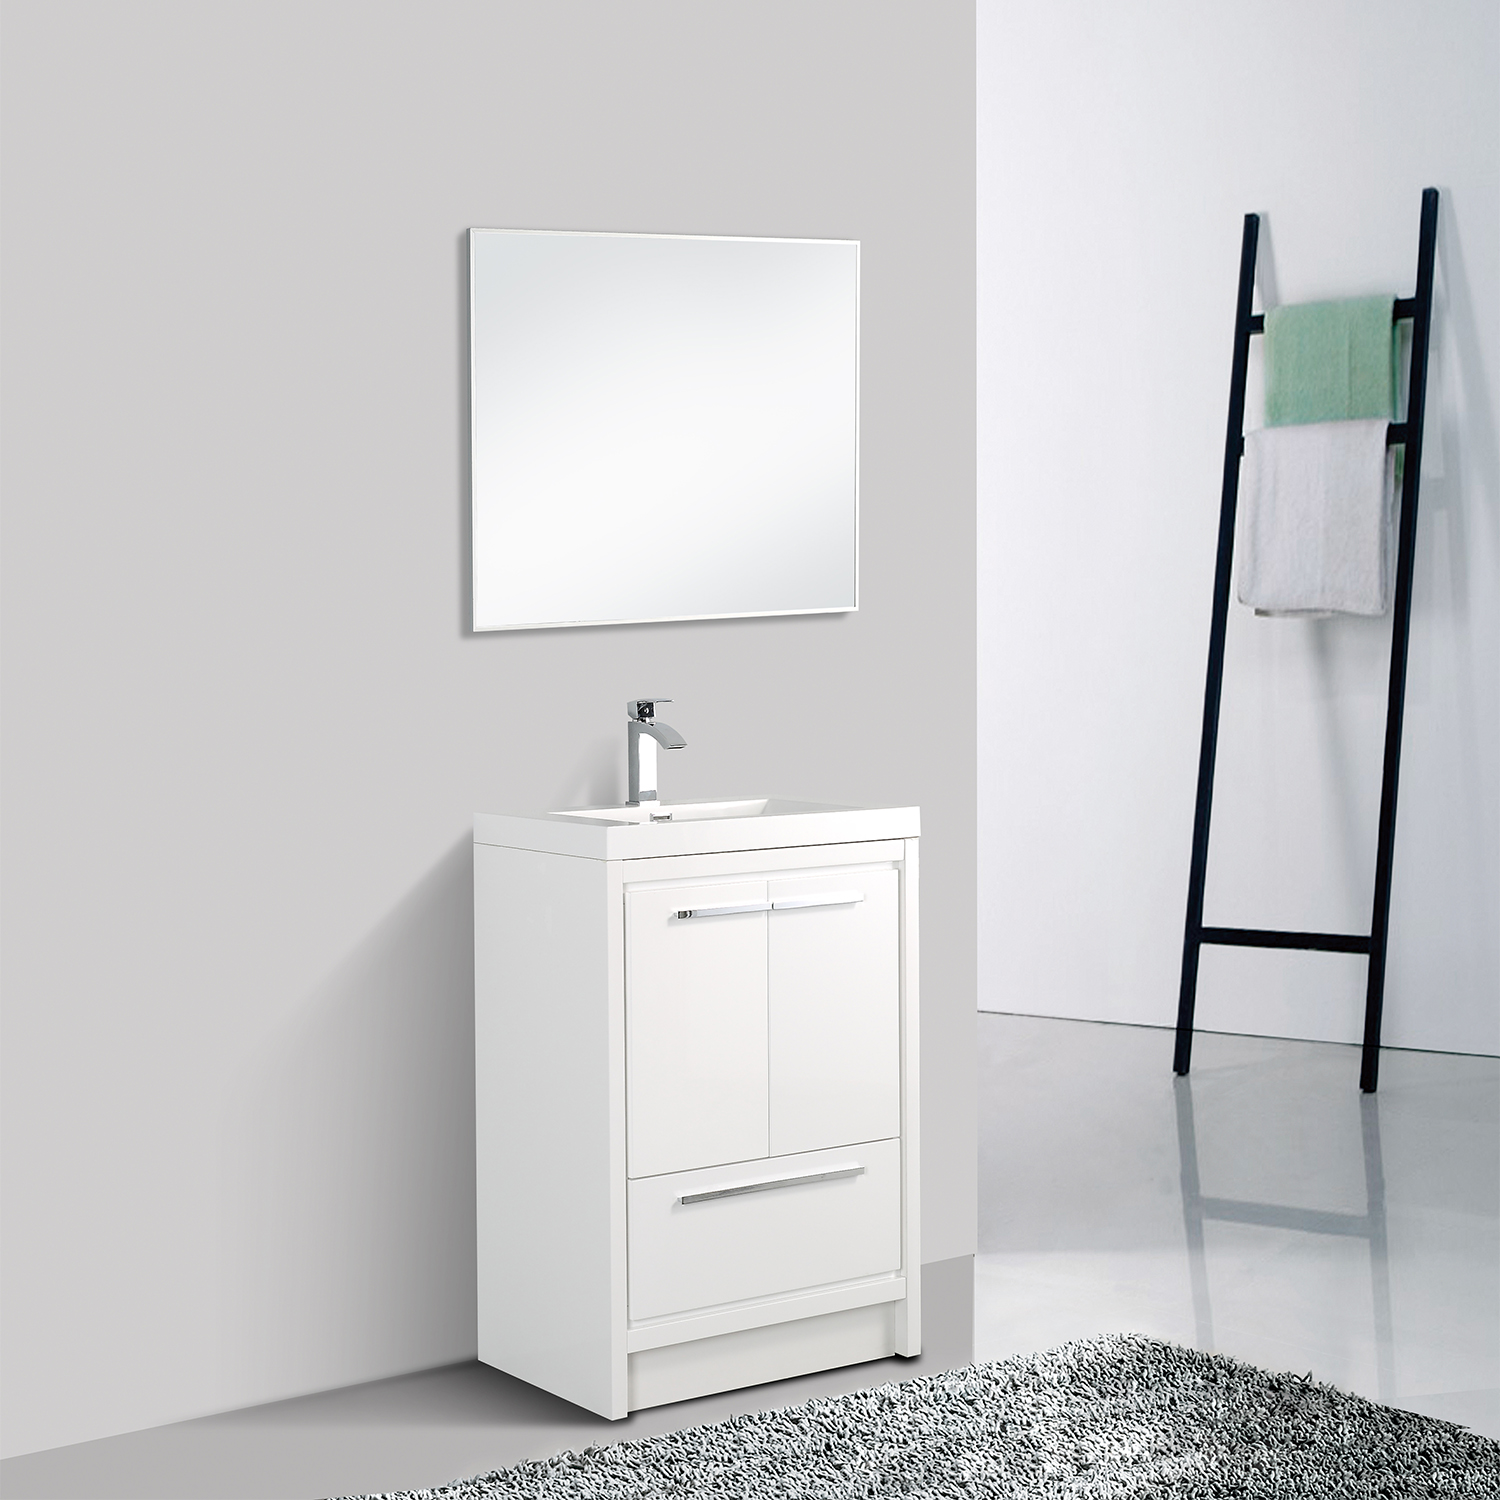 EVVN765 30WH A Main - Eviva Grace 30 in. White Bathroom Vanity with White Integrated Acrylic Countertop